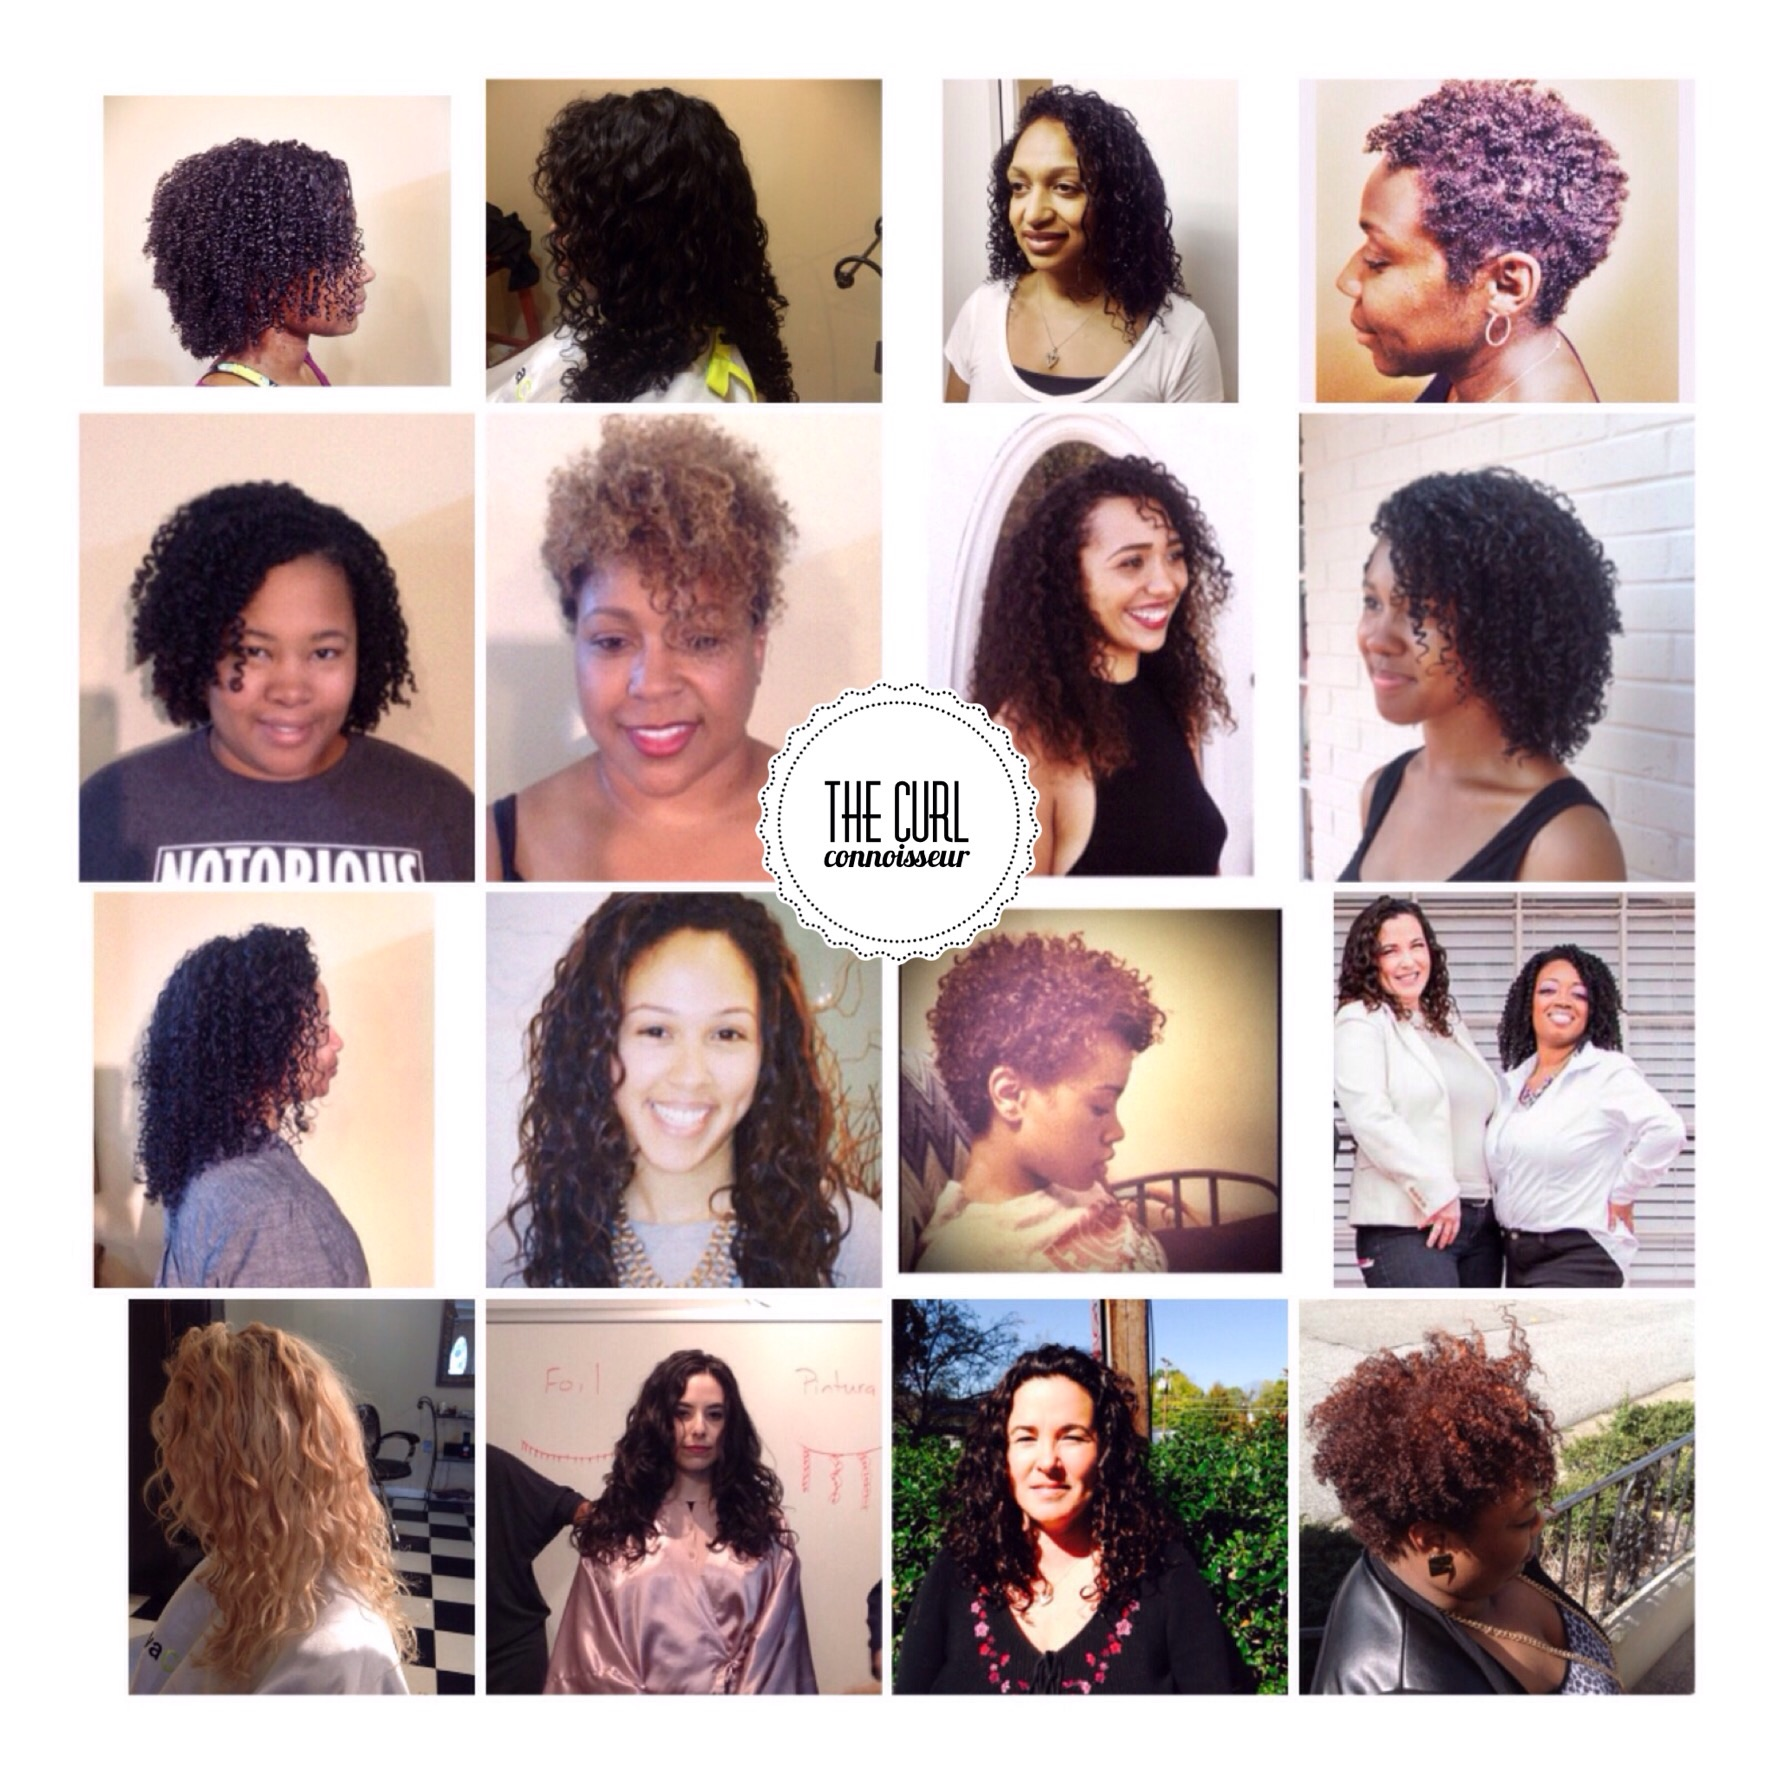 Curly hair is unique your salon experience should reflect that.